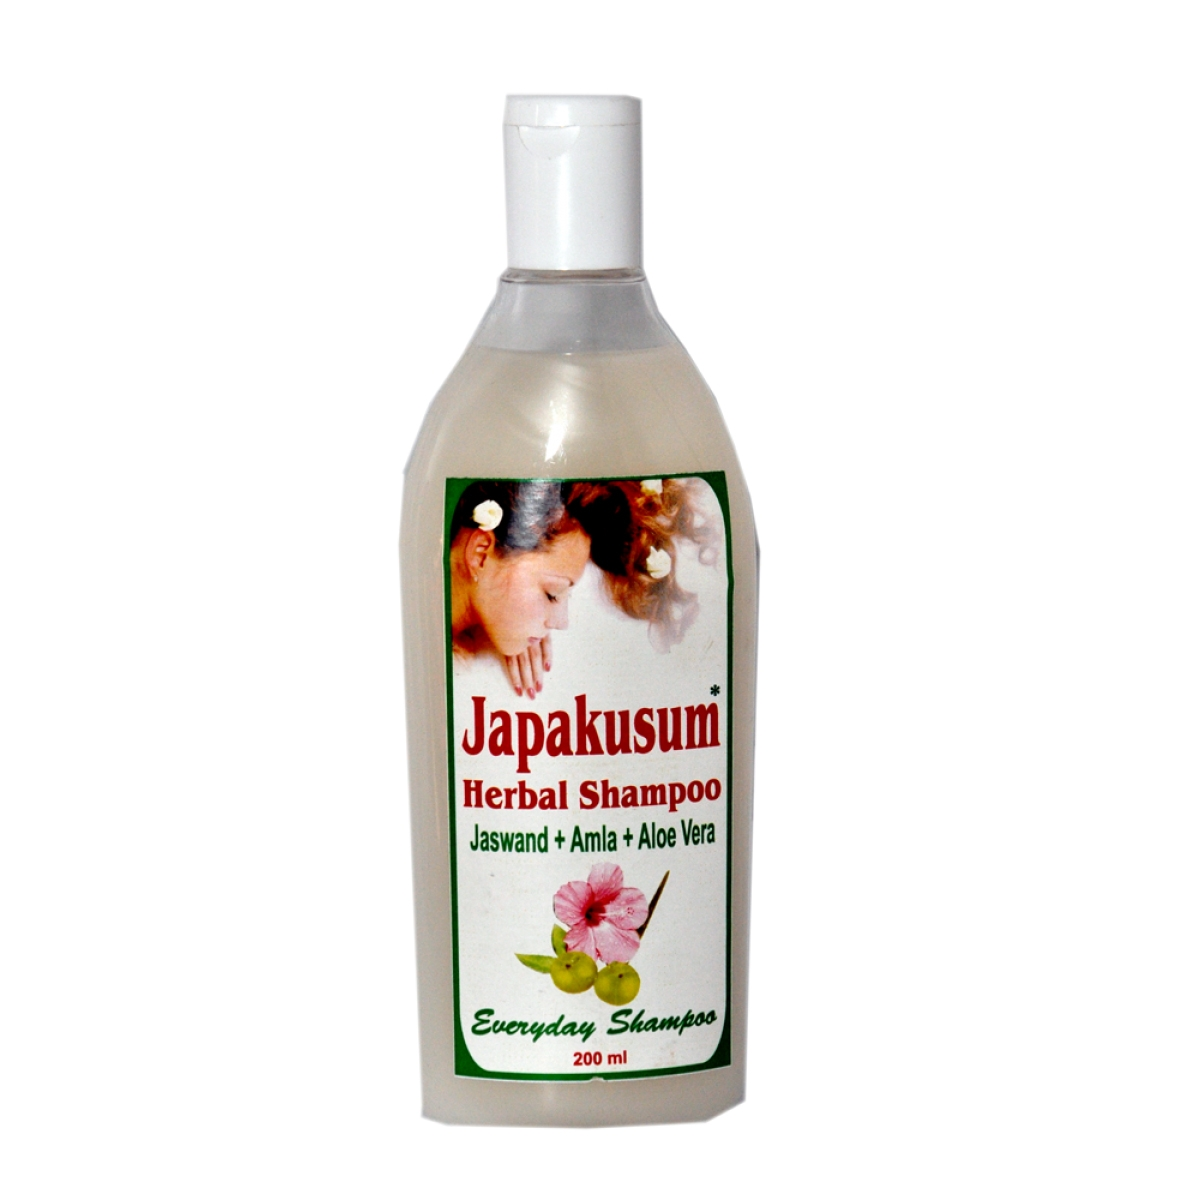 Japakusum Shampoo In Model Town